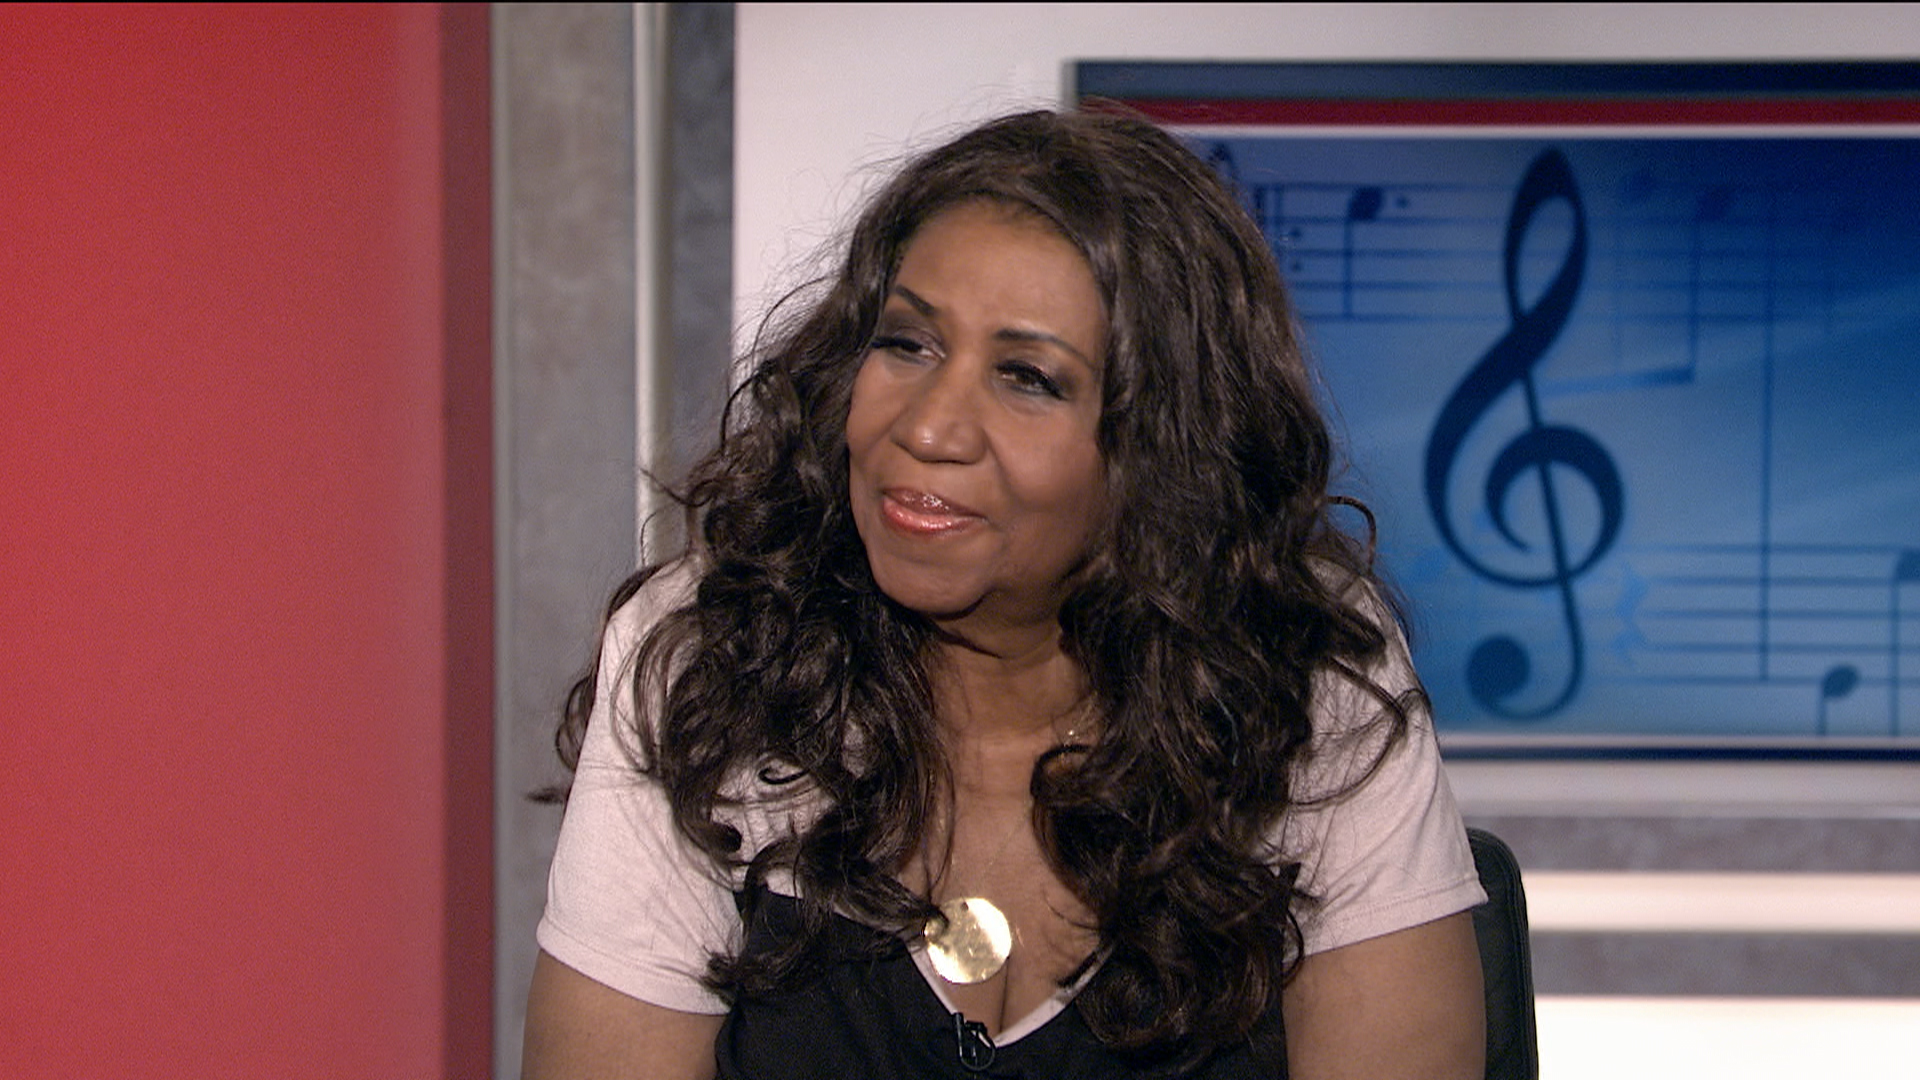 Aretha Franklin's connection to Dr. King